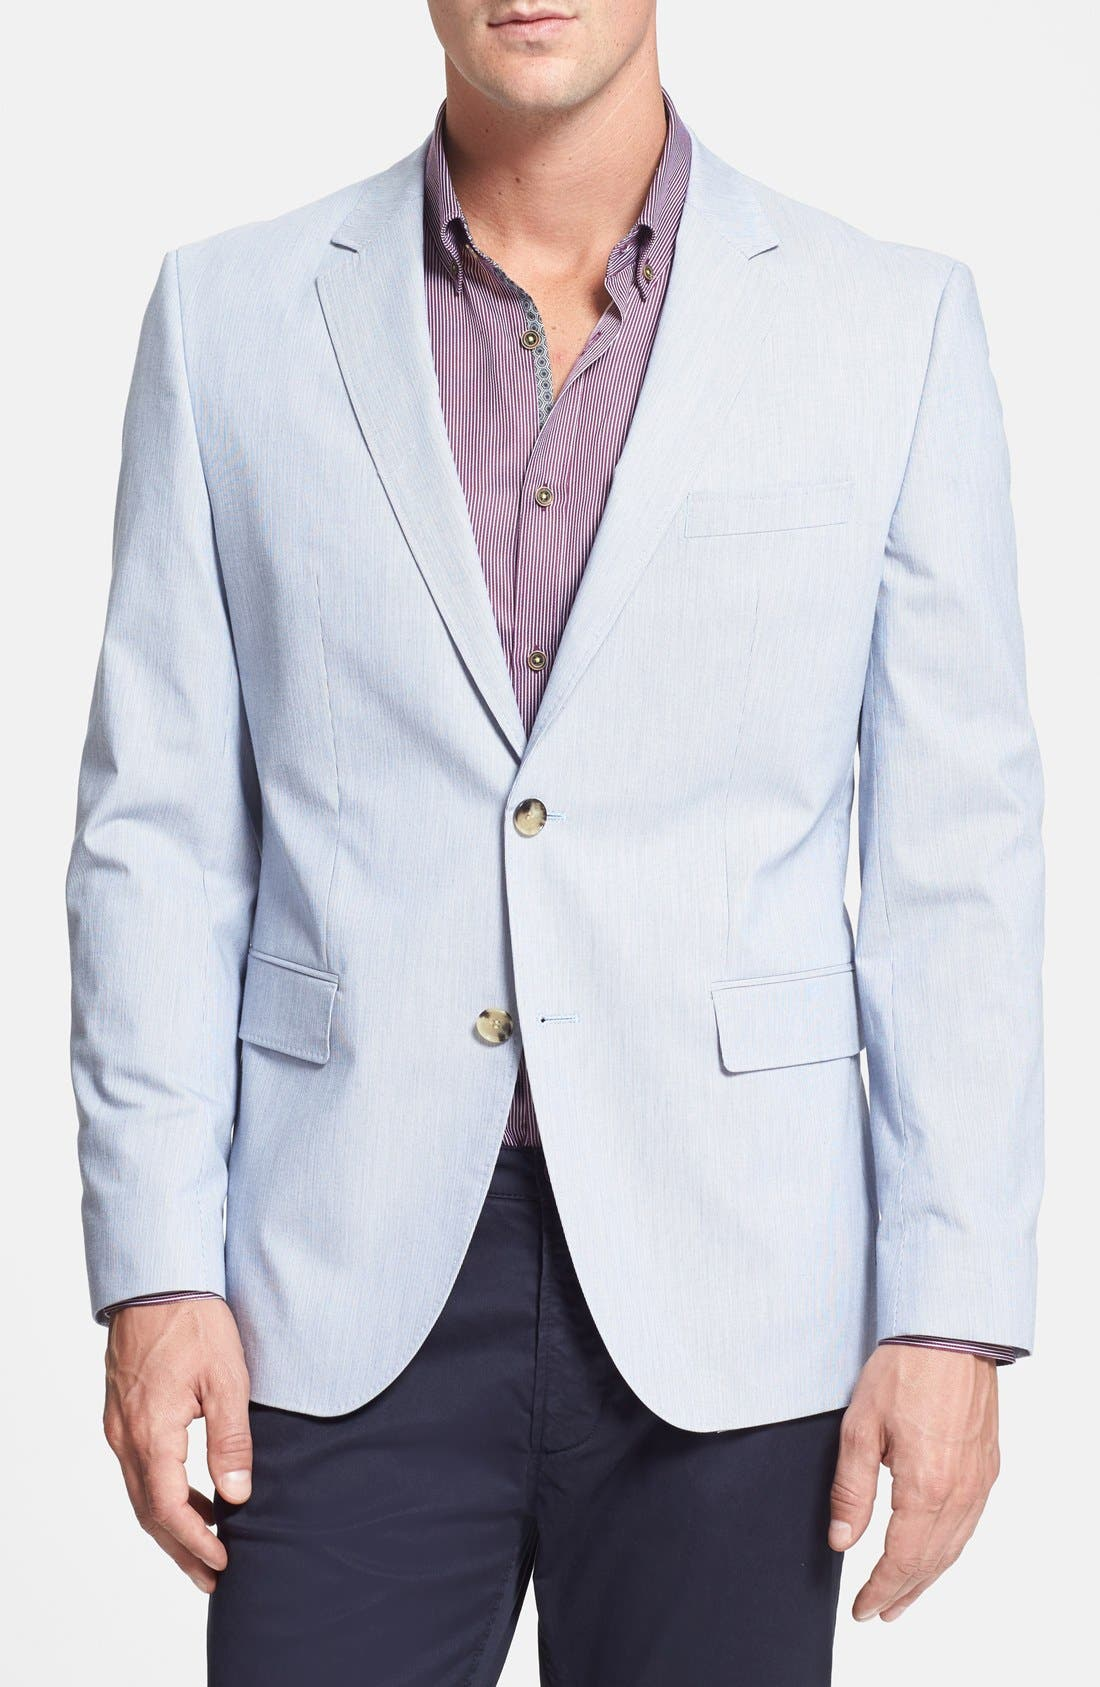 Main Image - BOSS HUGO BOSS 'The Coast' Trim Fit Stretch Cotton Stripe Sportcoat